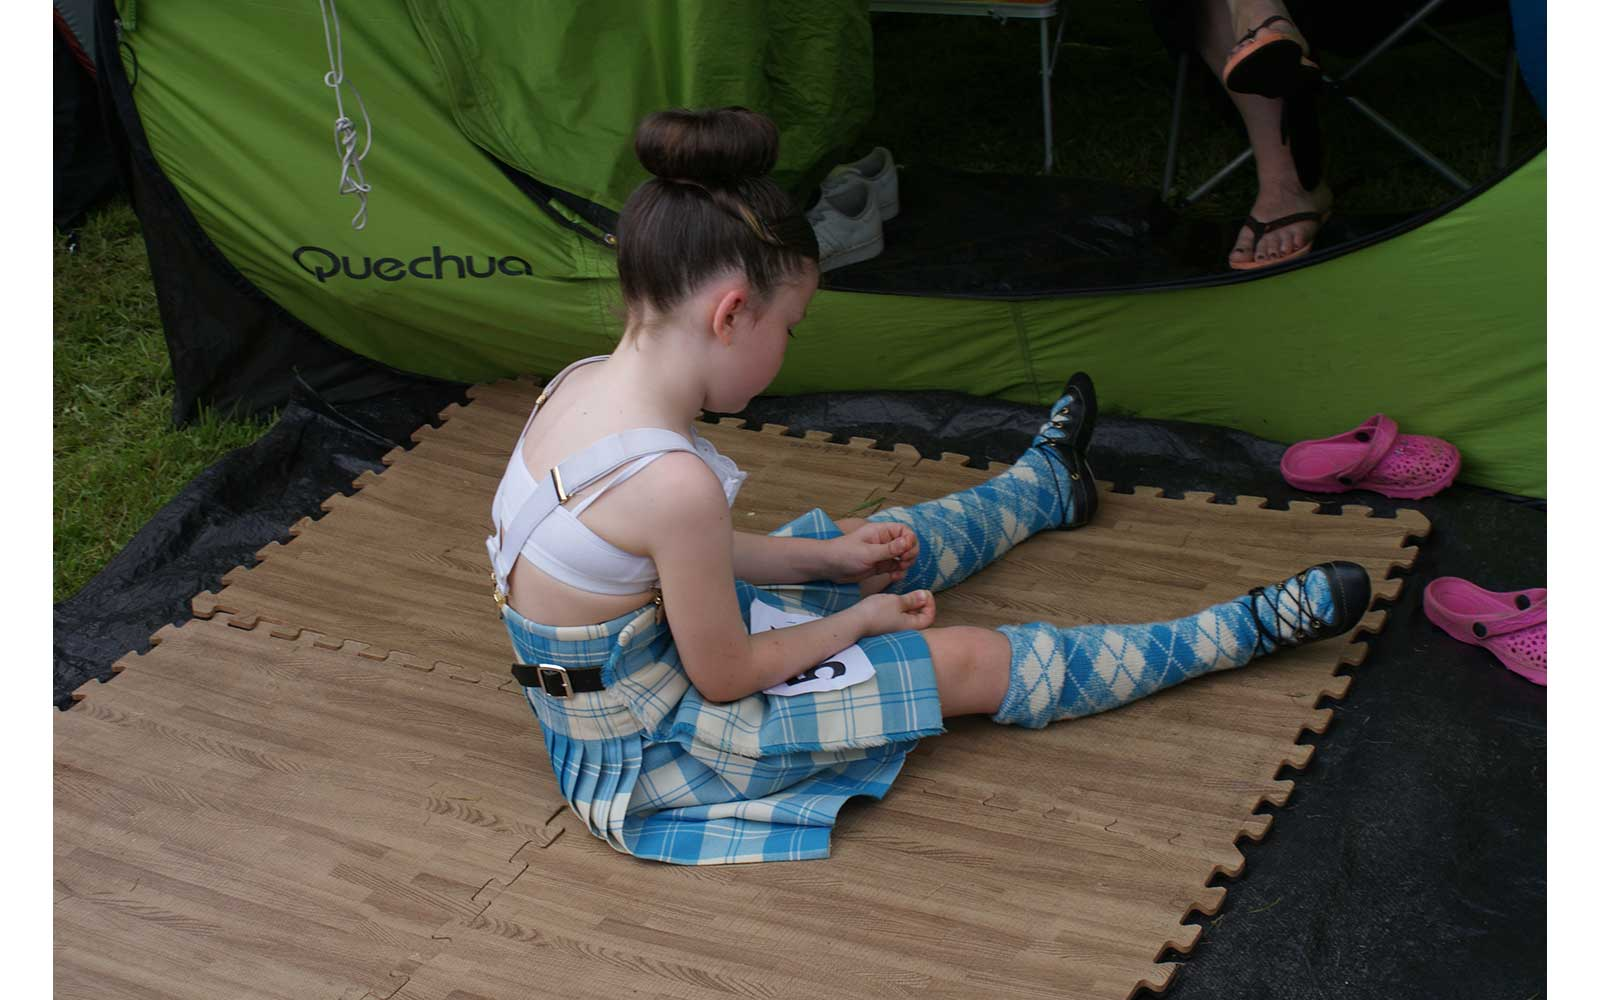 Girl waiting to compete in a dance competition